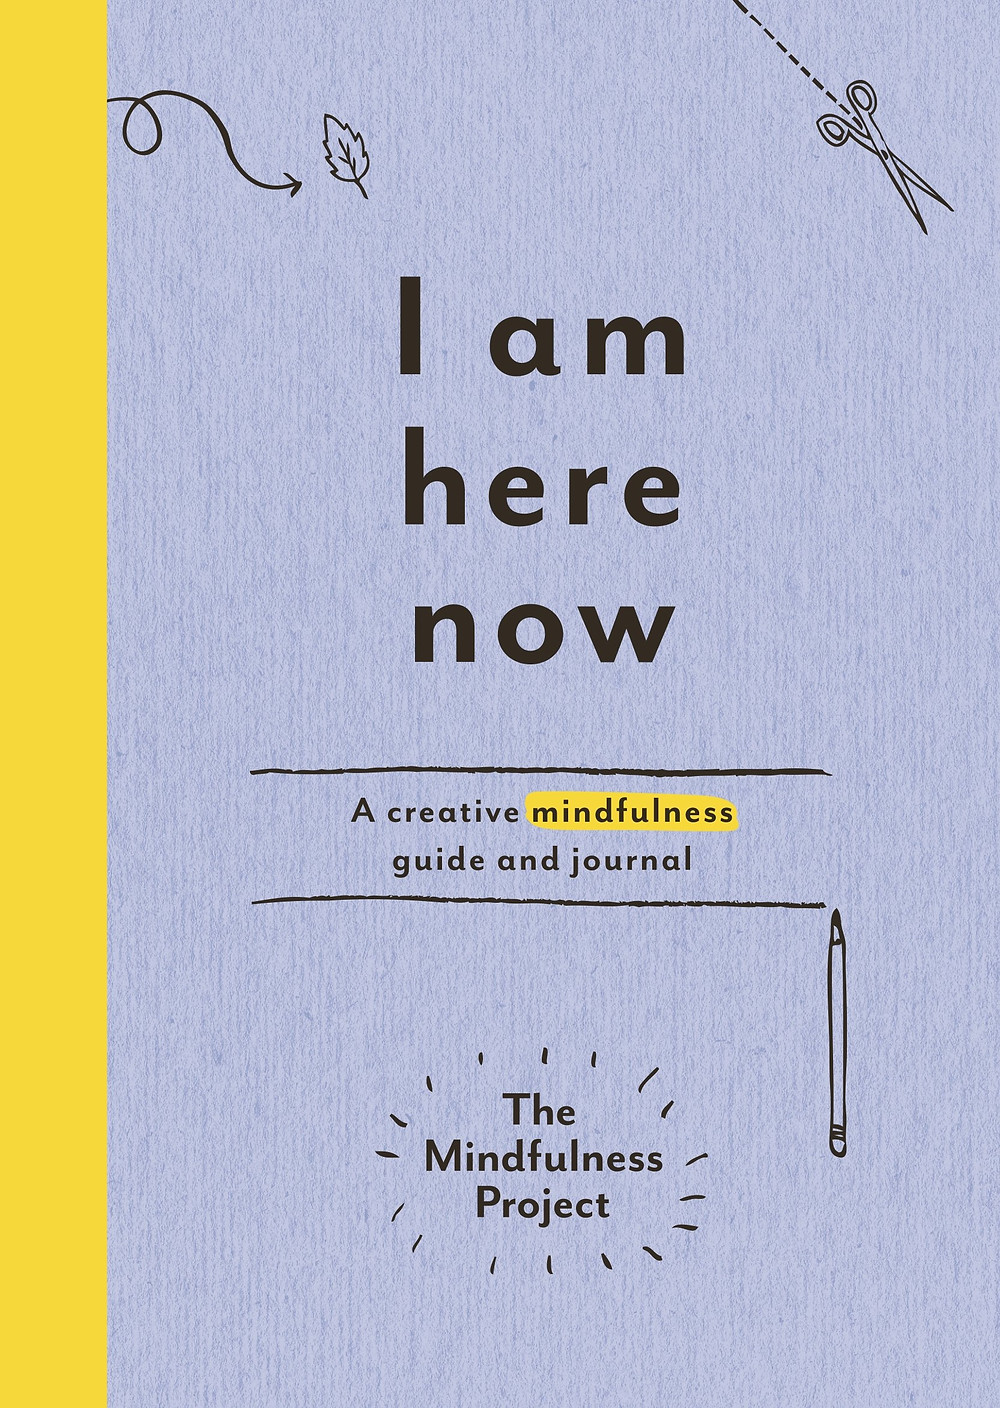 I Am Here Now by The Mindfulness Project image via Amazon website